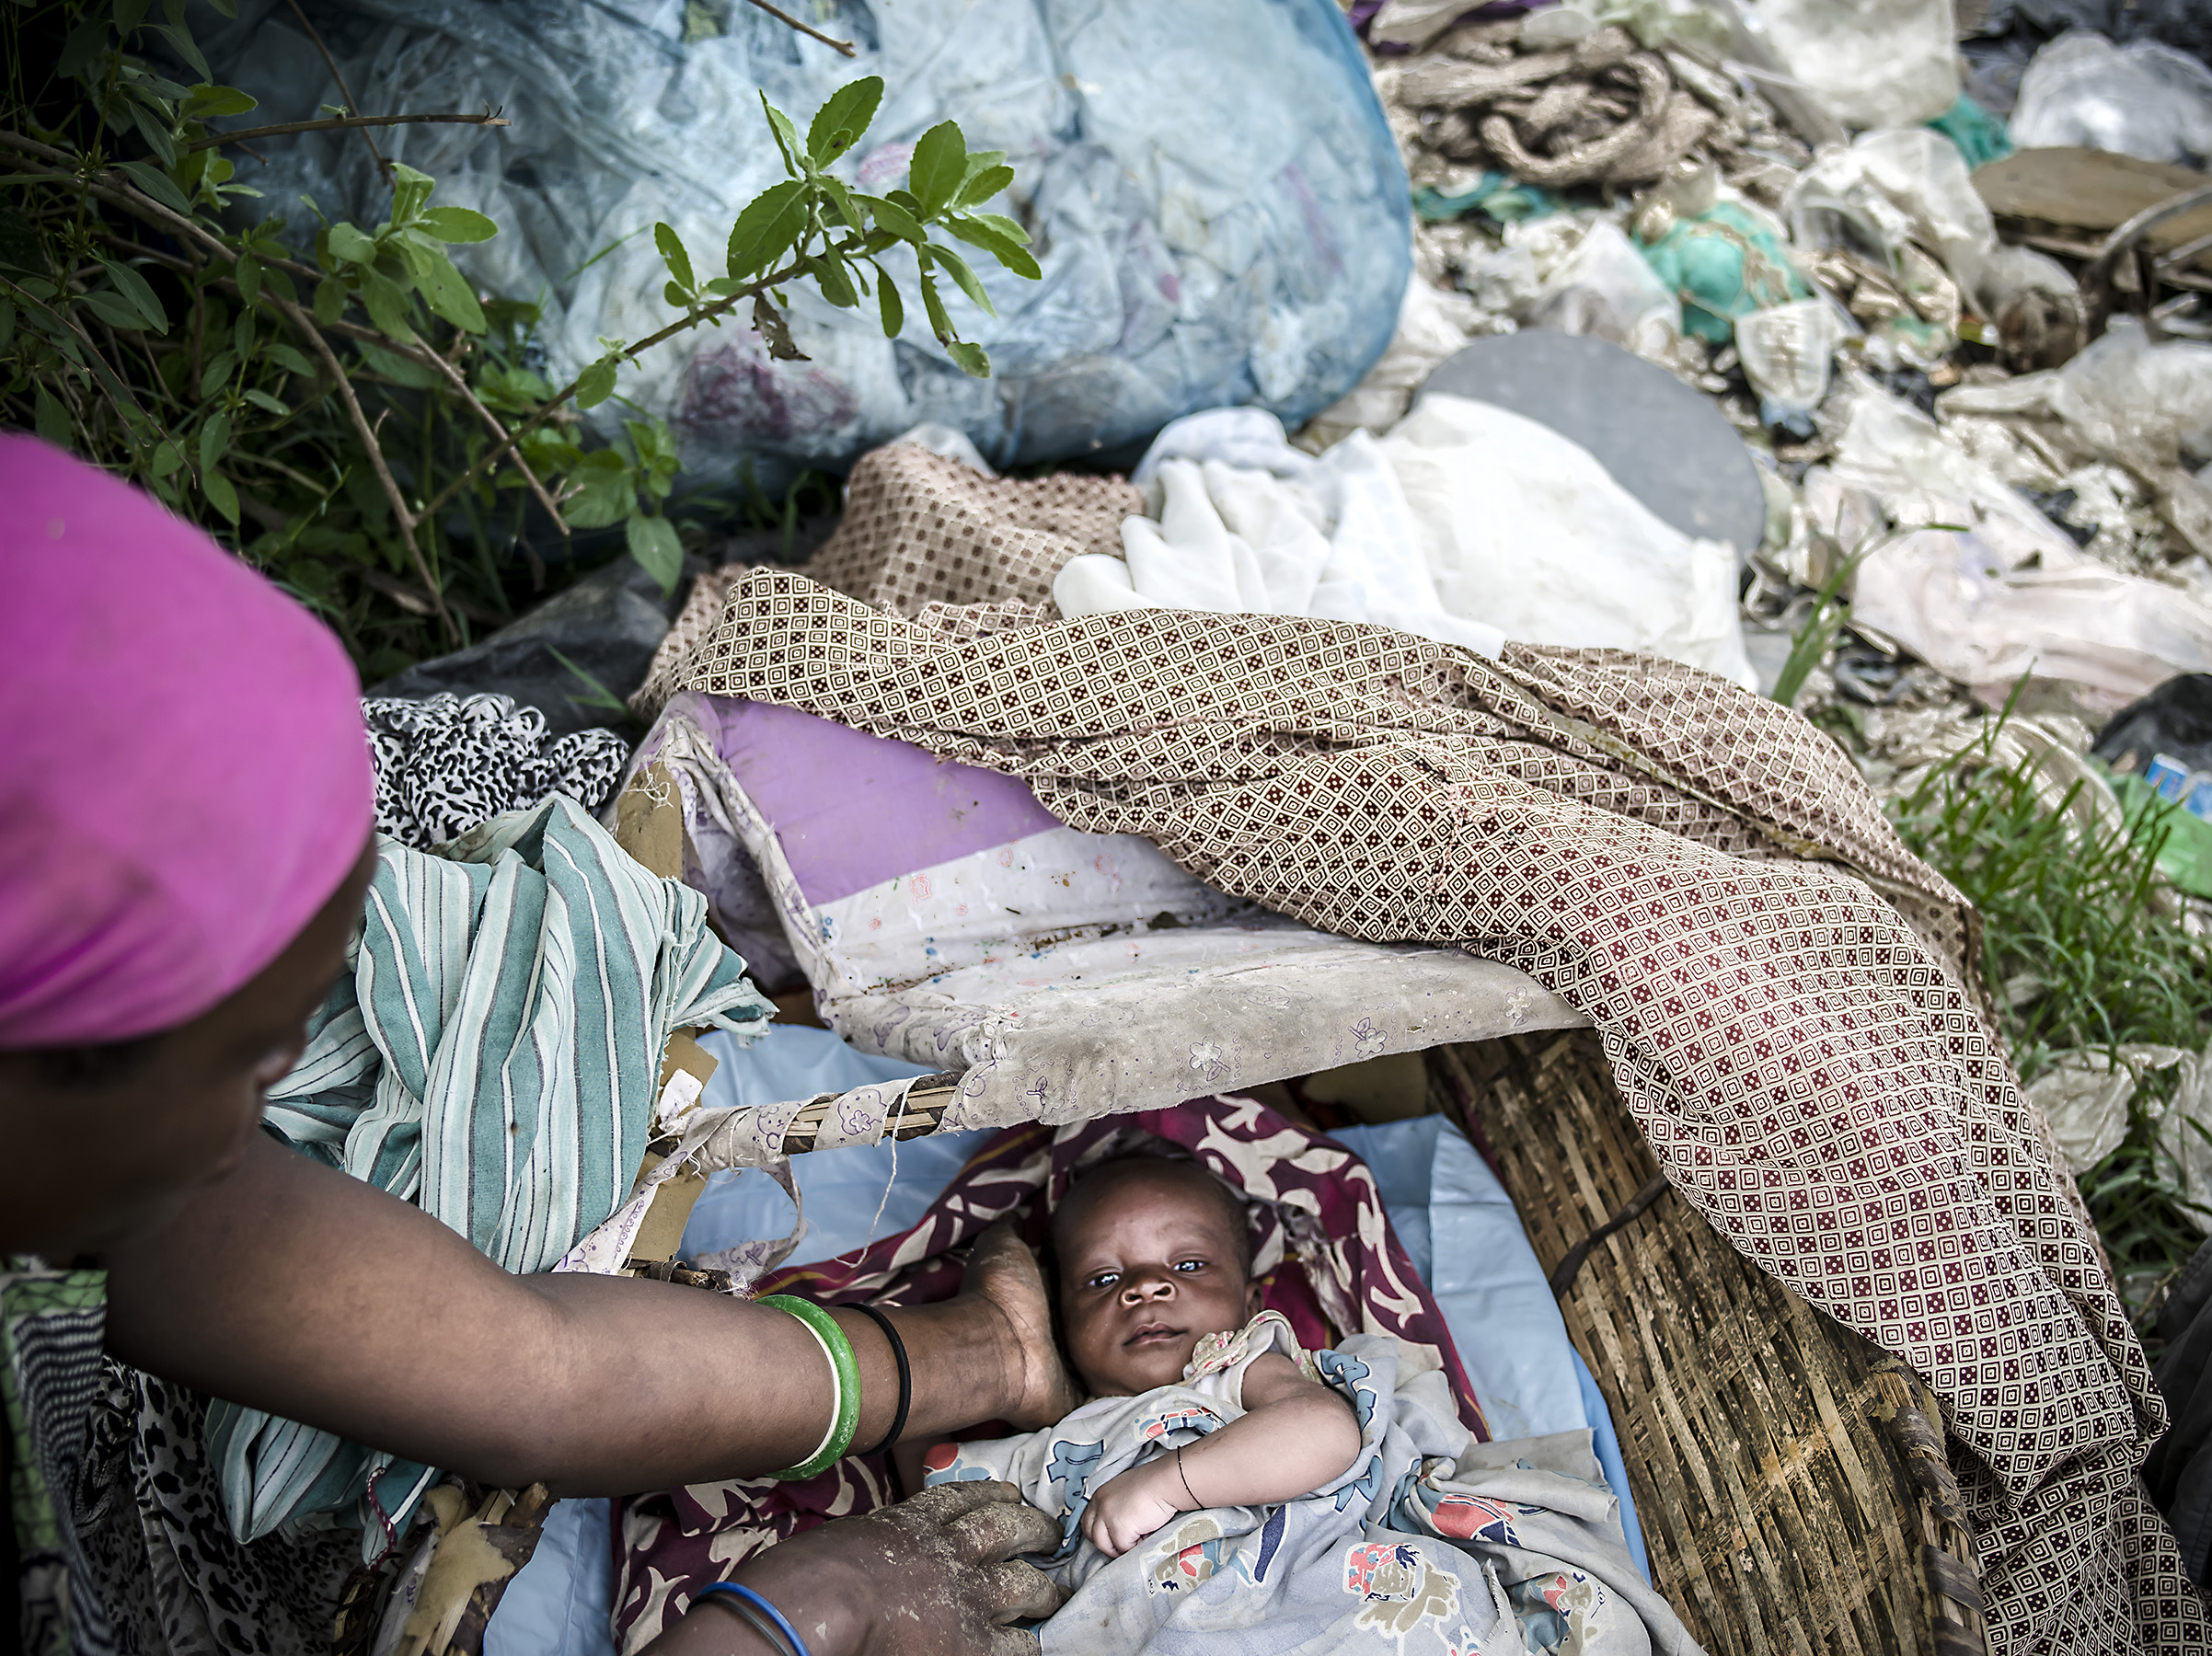 A woman puts her baby to rest after breast feeding in Masaka dumpsite.